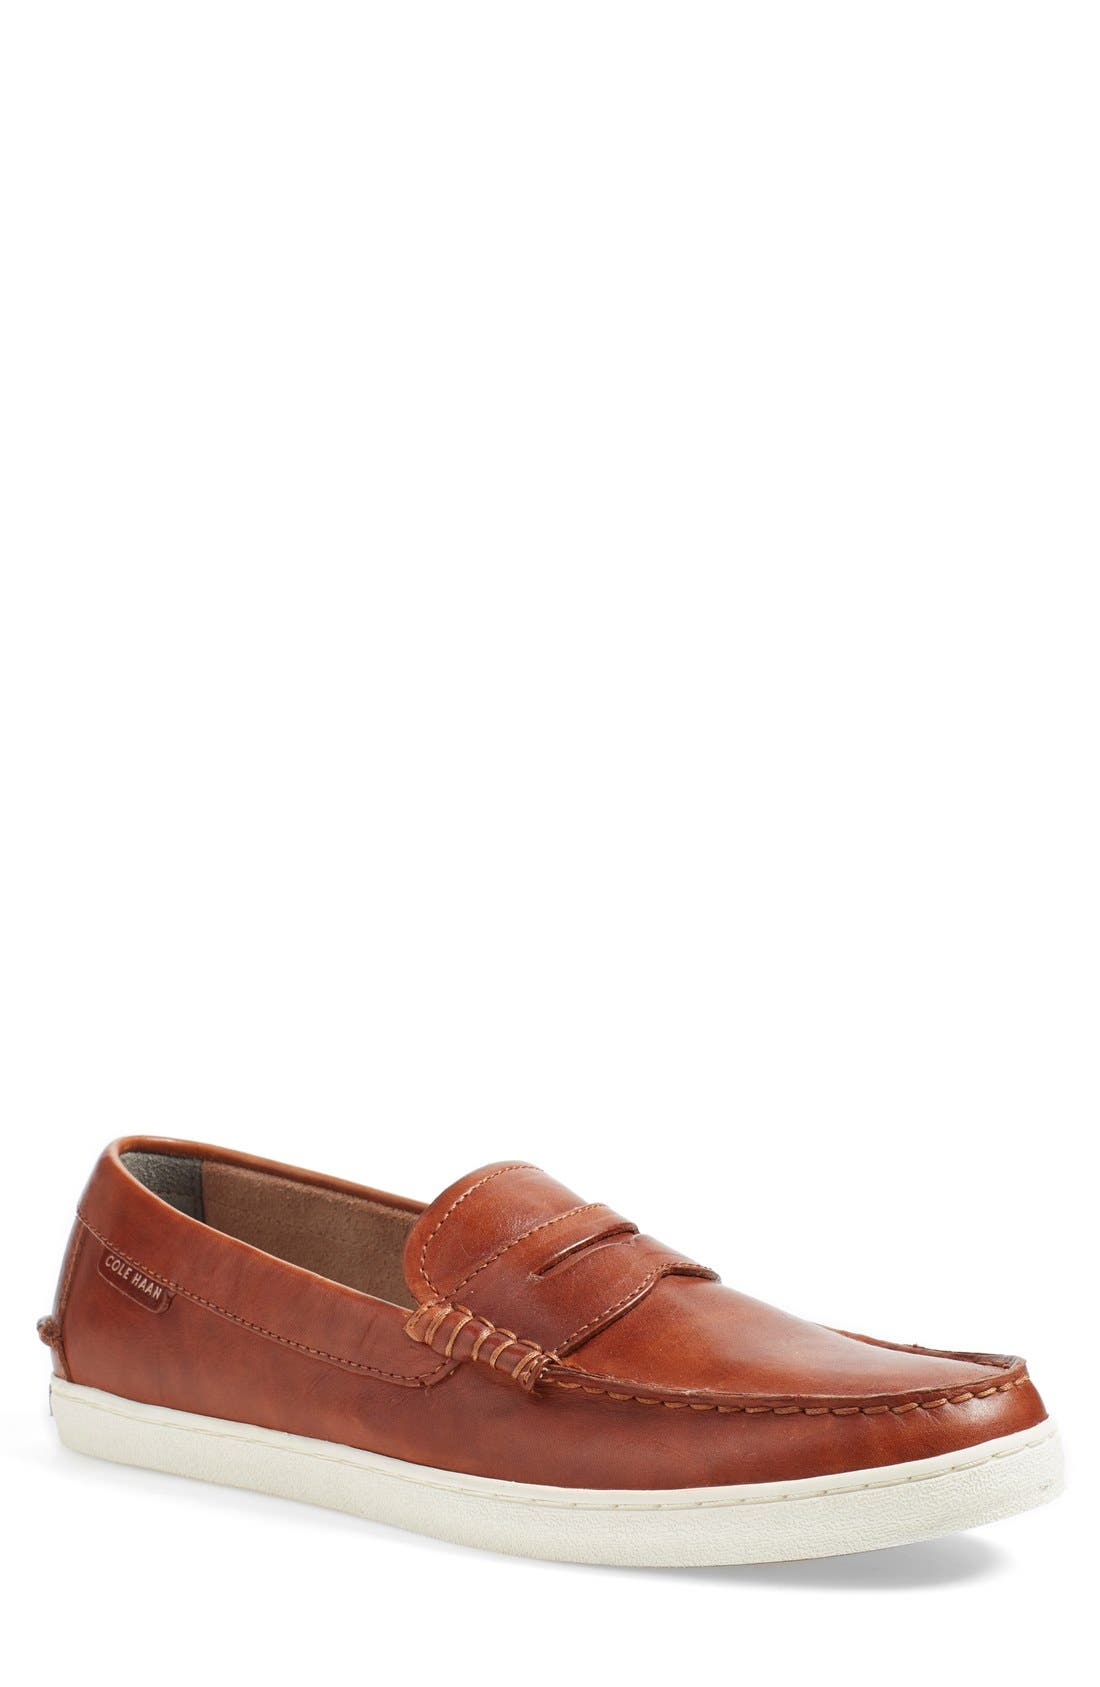 Alternate Image 1 Selected - Cole Haan 'Pinch' Penny Loafer (Men)